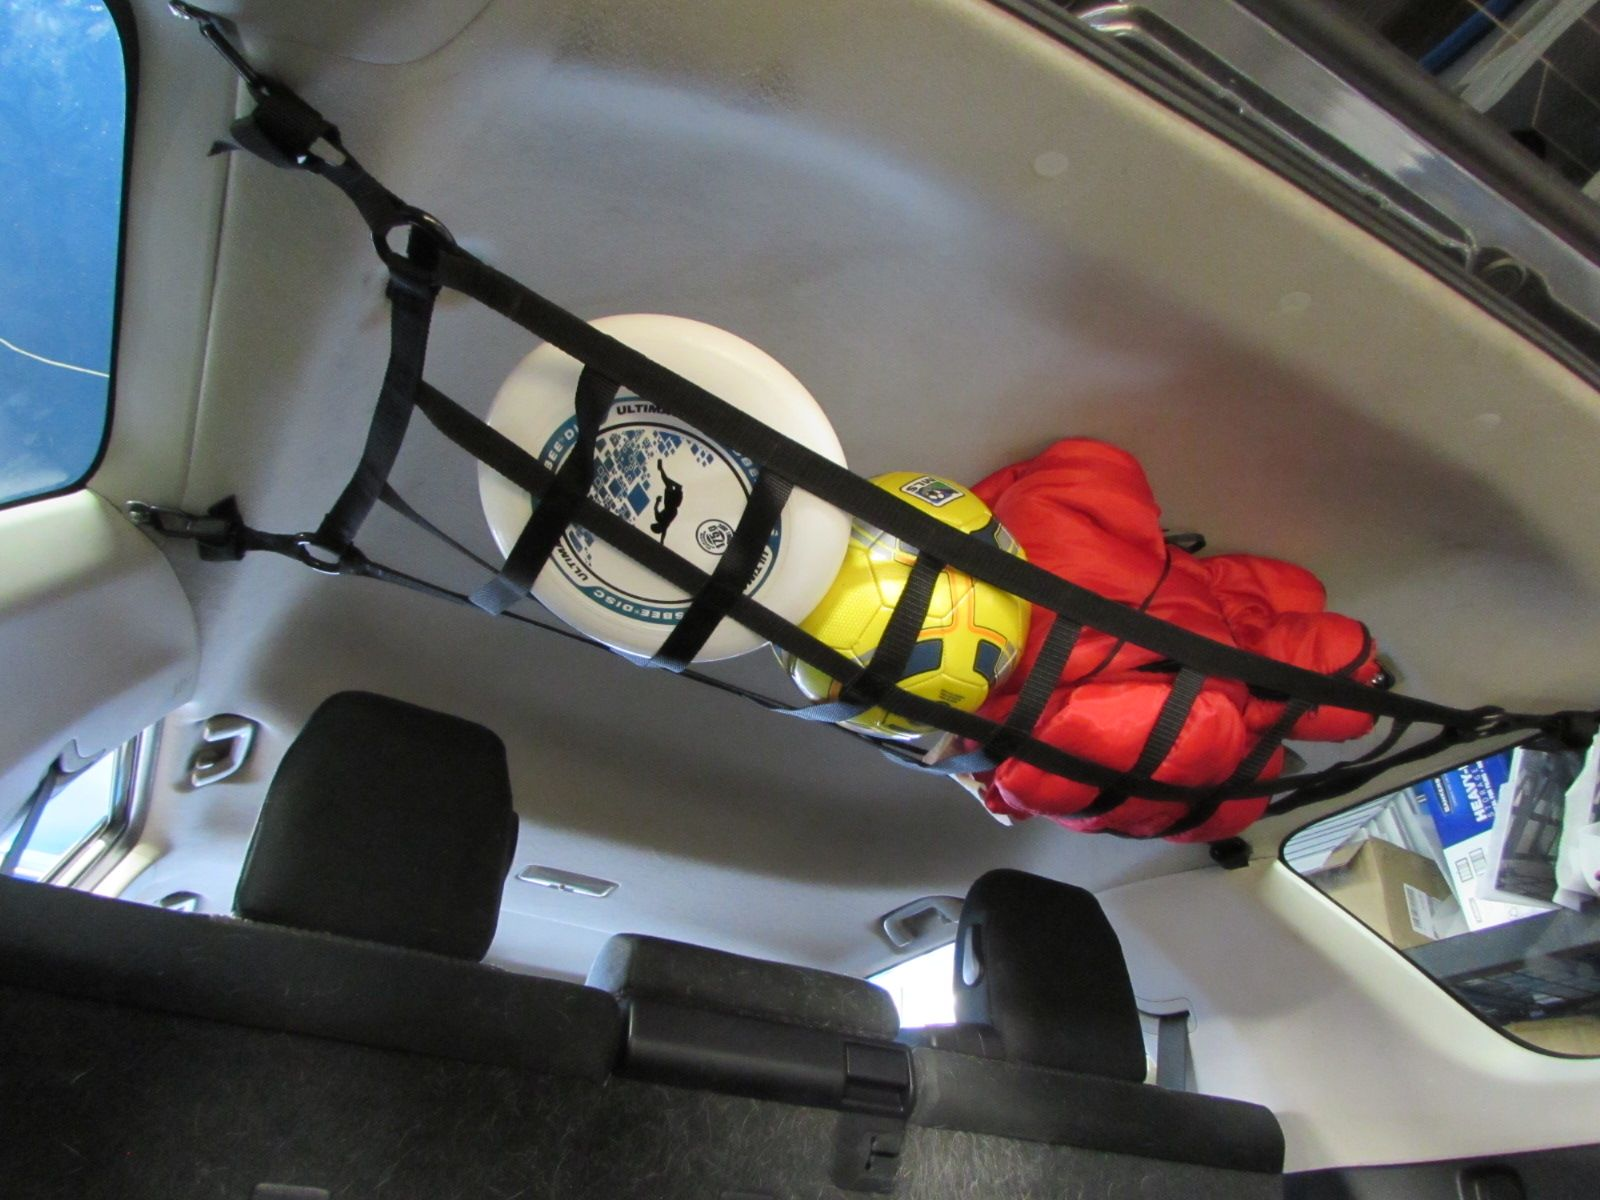 4runner 5th Gen Ceiling Net Toyota 4runner 4runner 4runner Mods